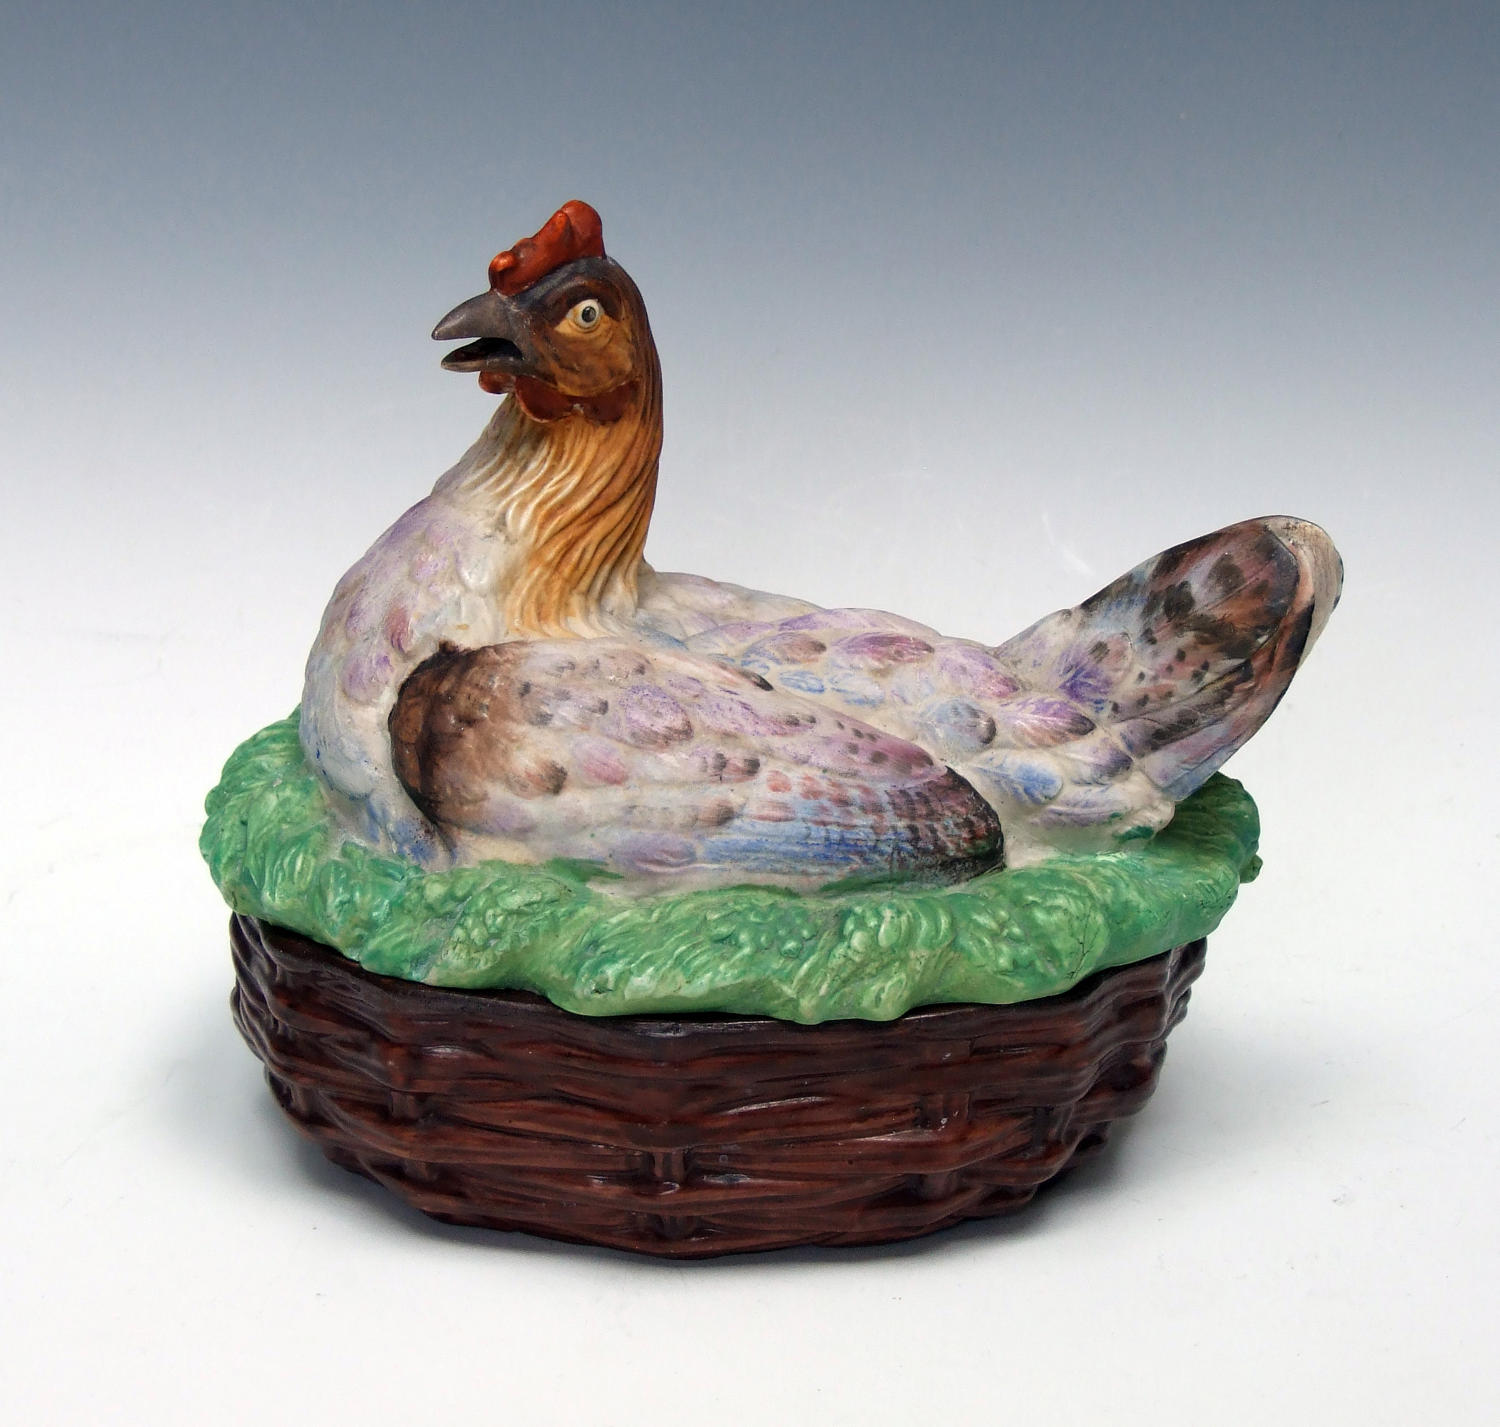 Unusual and colourful hen on basket tureen